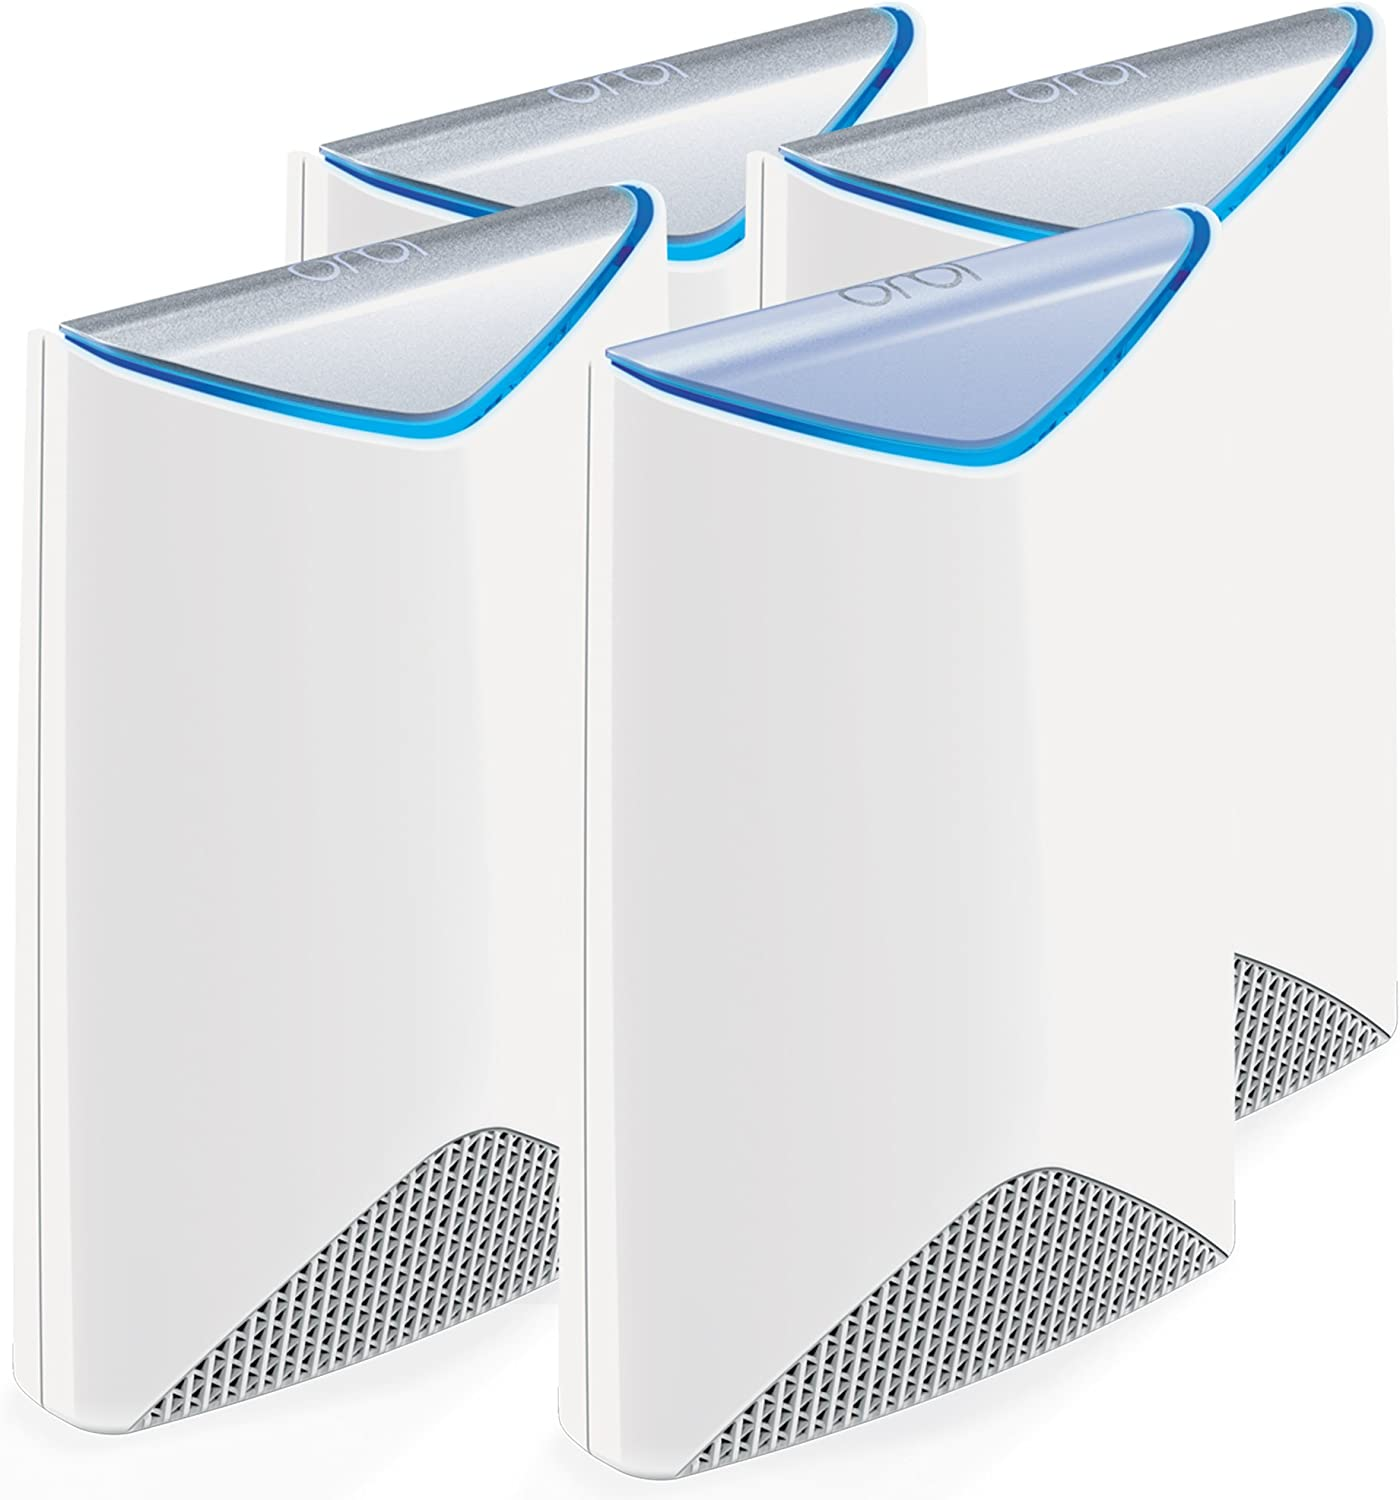 RBK50 with NETGEAR CM400 8x4 Cable Modem DOCSIS 3.0 Max Download Speeds of 343Mbps. NETGEAR Orbi High-performance AC3000 Tri-band Mesh WiFi System